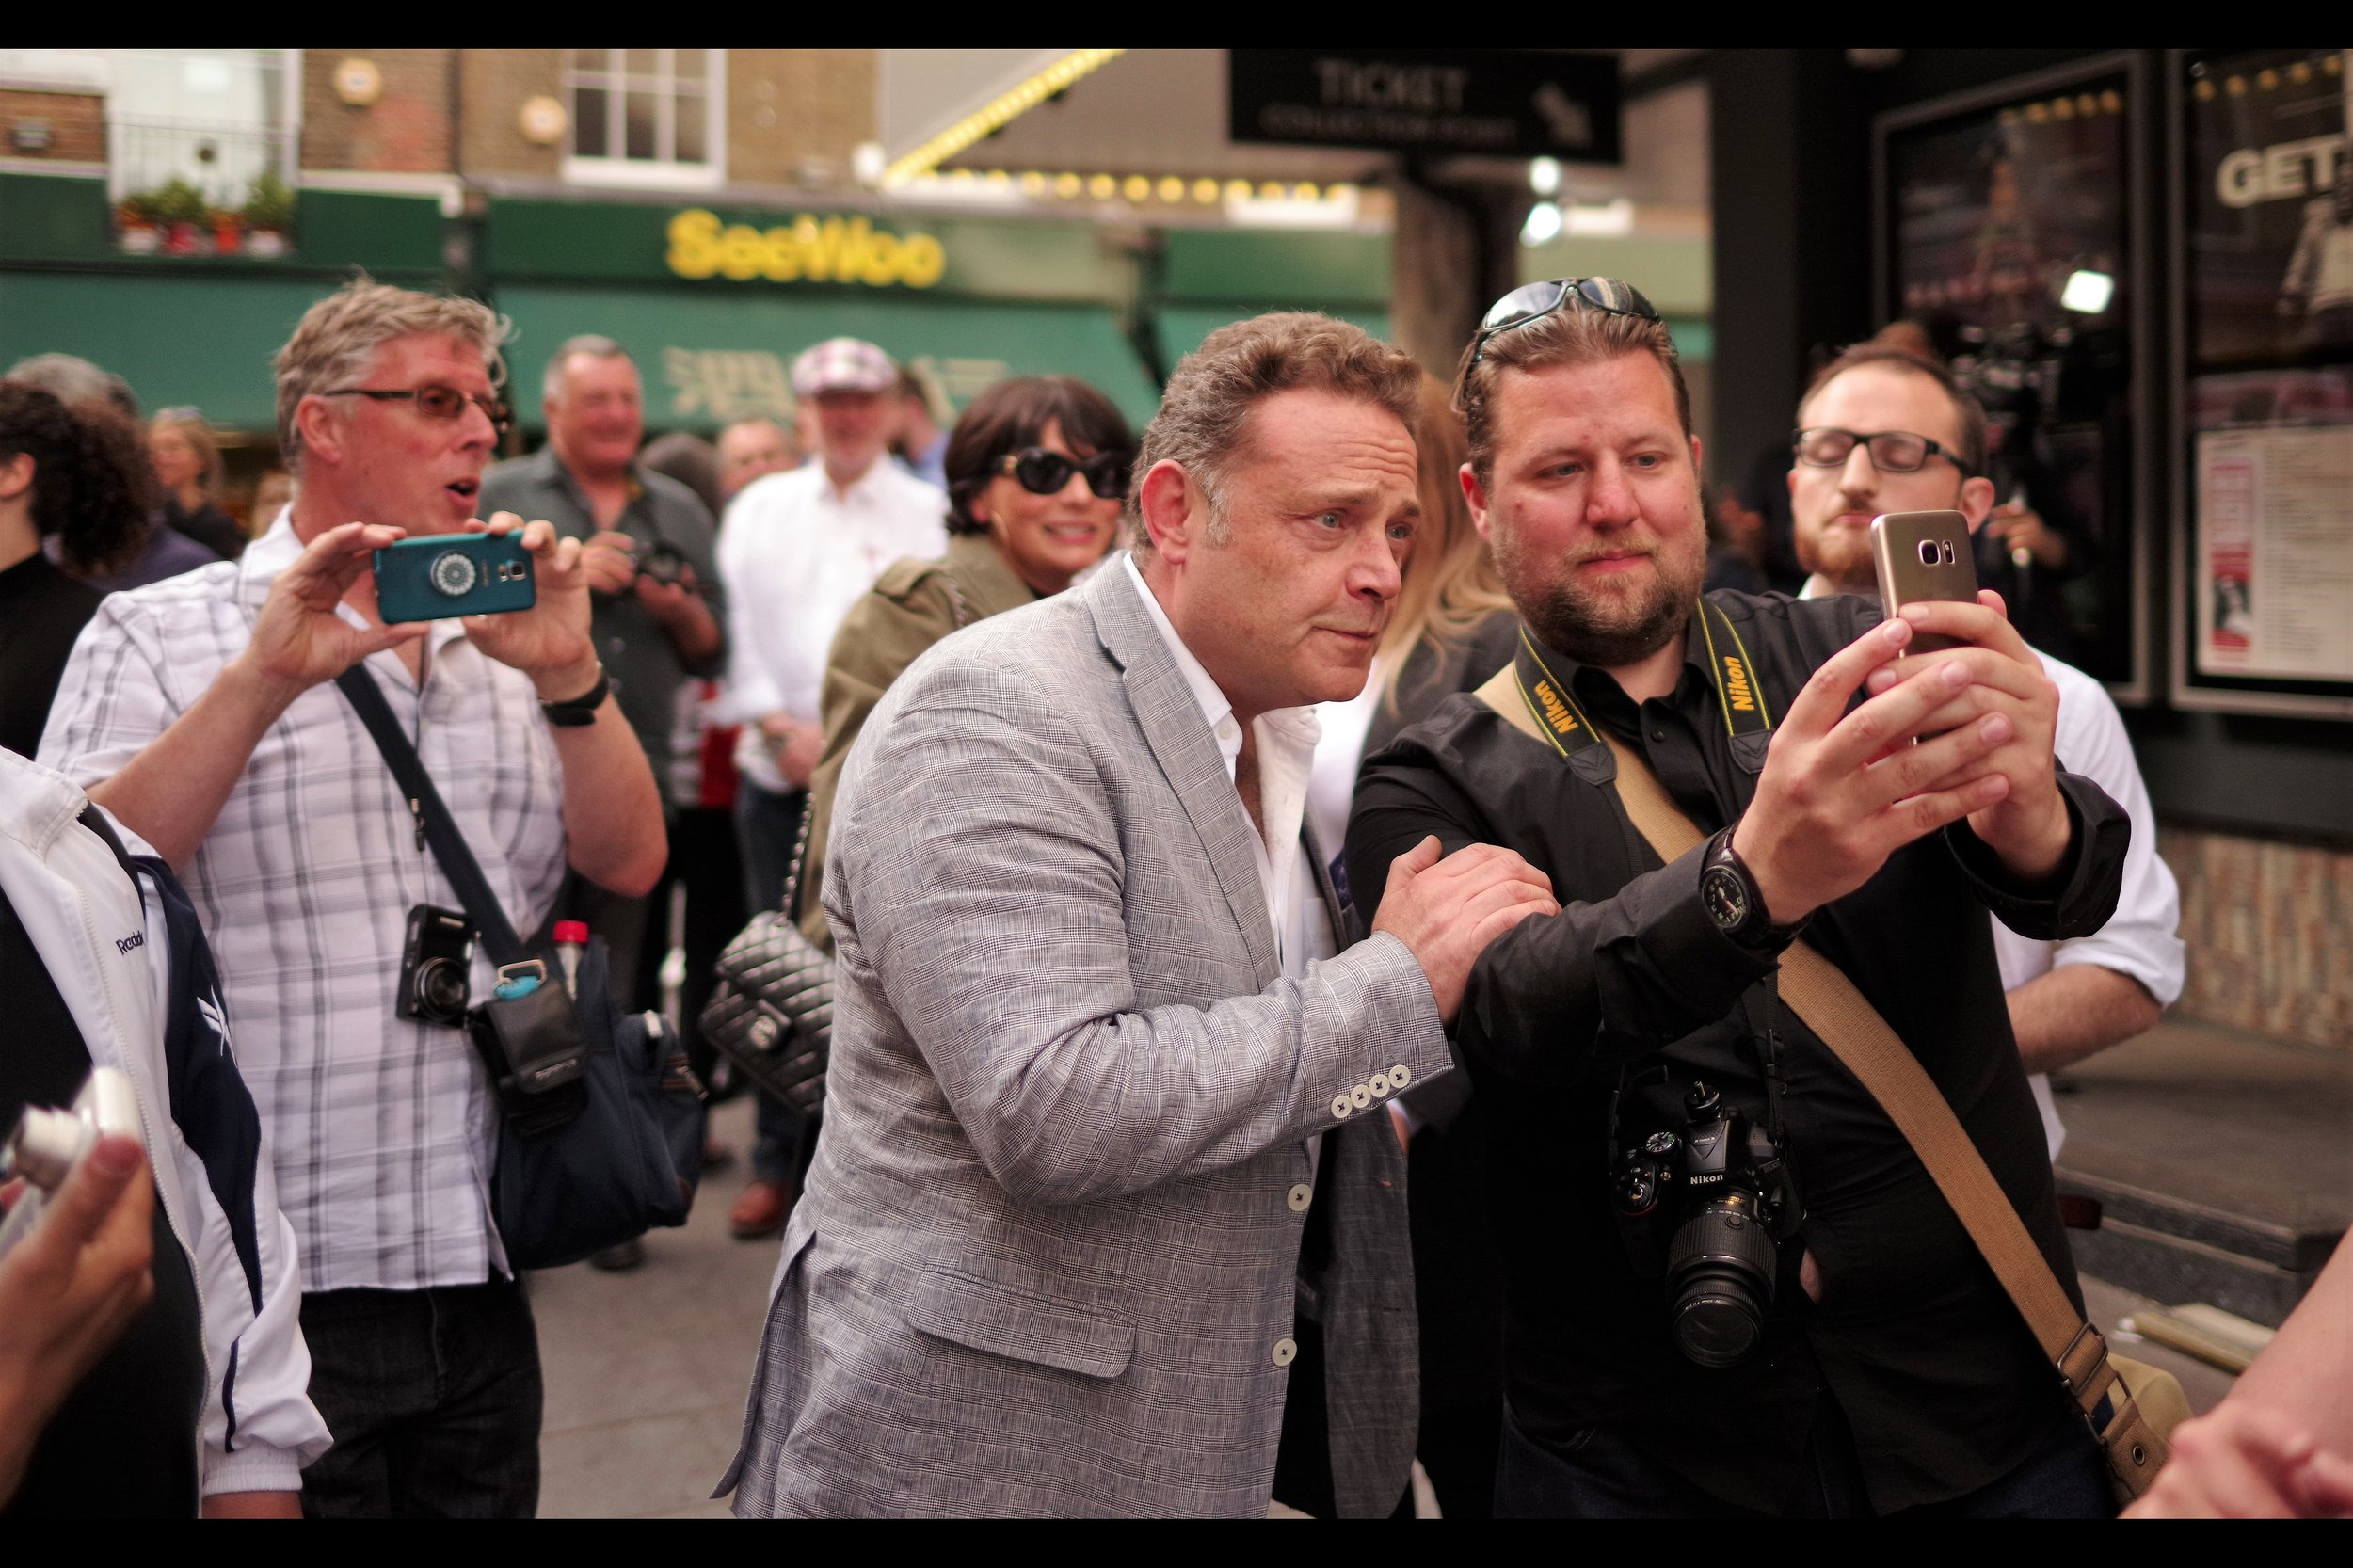 """""""I hope you don't mind, but I'm finding this is a particularly emotional part of this movie""""  - John Thomson is in this movie, as well as (per imdb) such films as Inkheart (2008), Wallace & Grommit : Curse of the Were-Rabbit (2005), and the TV series Cold Feet"""